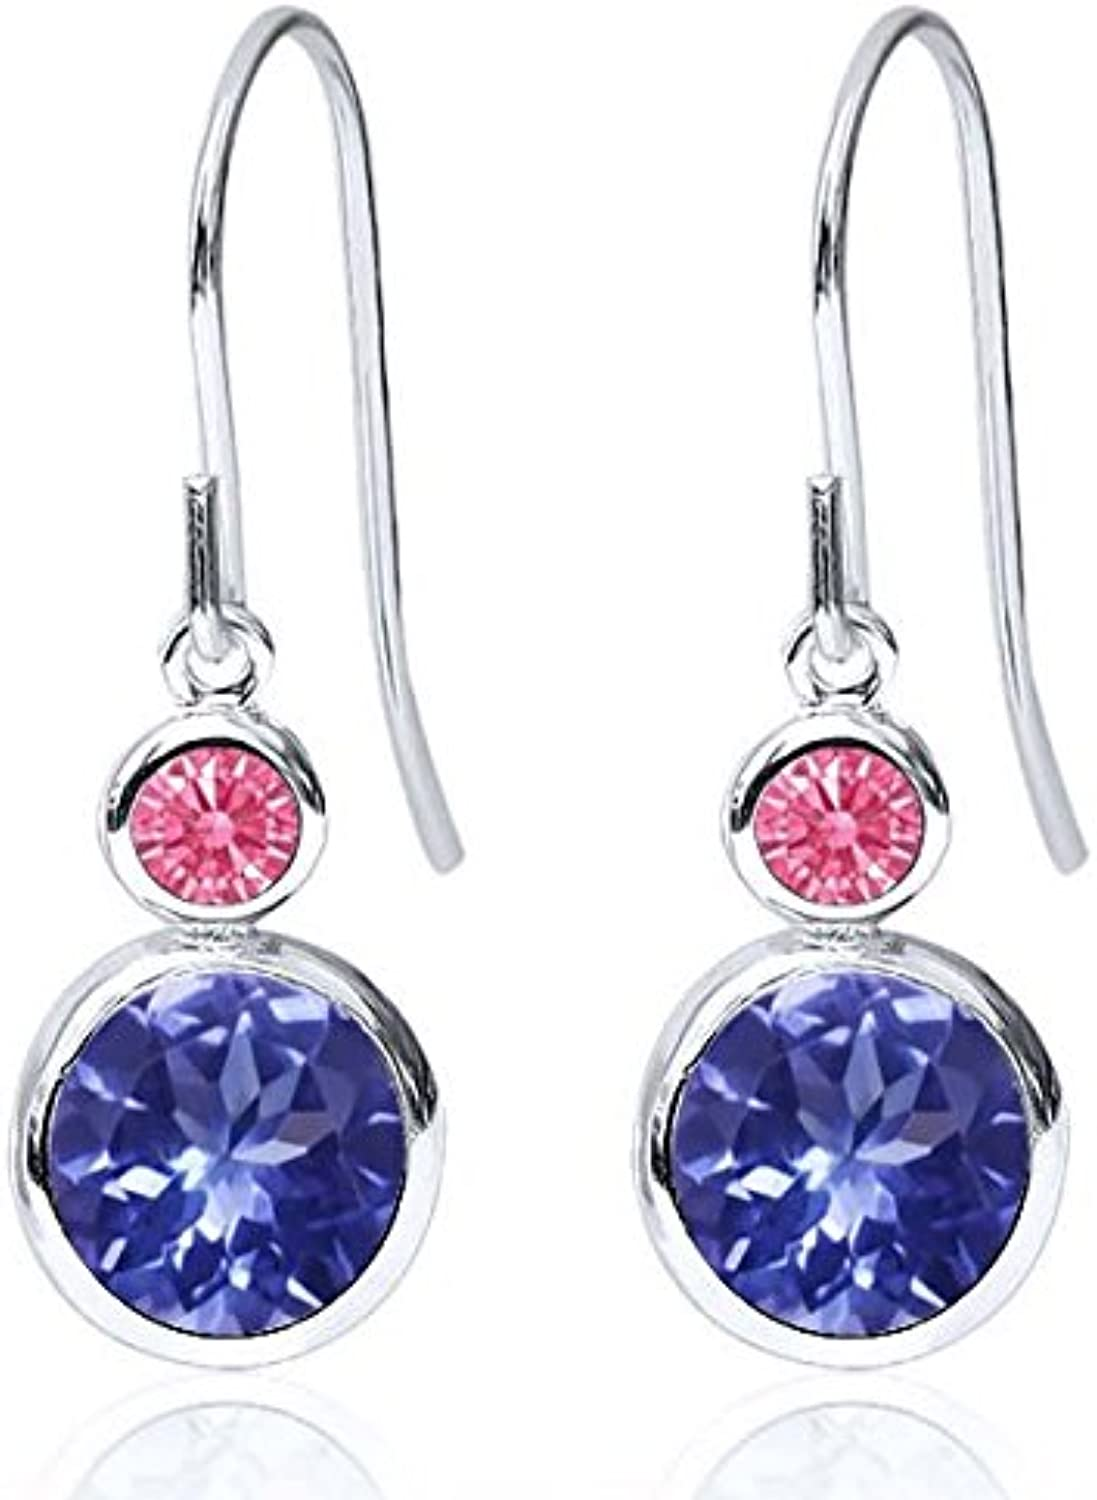 Carlo white bluee 925 Sterling Silver Earrings Made With Swarovski Zirconia